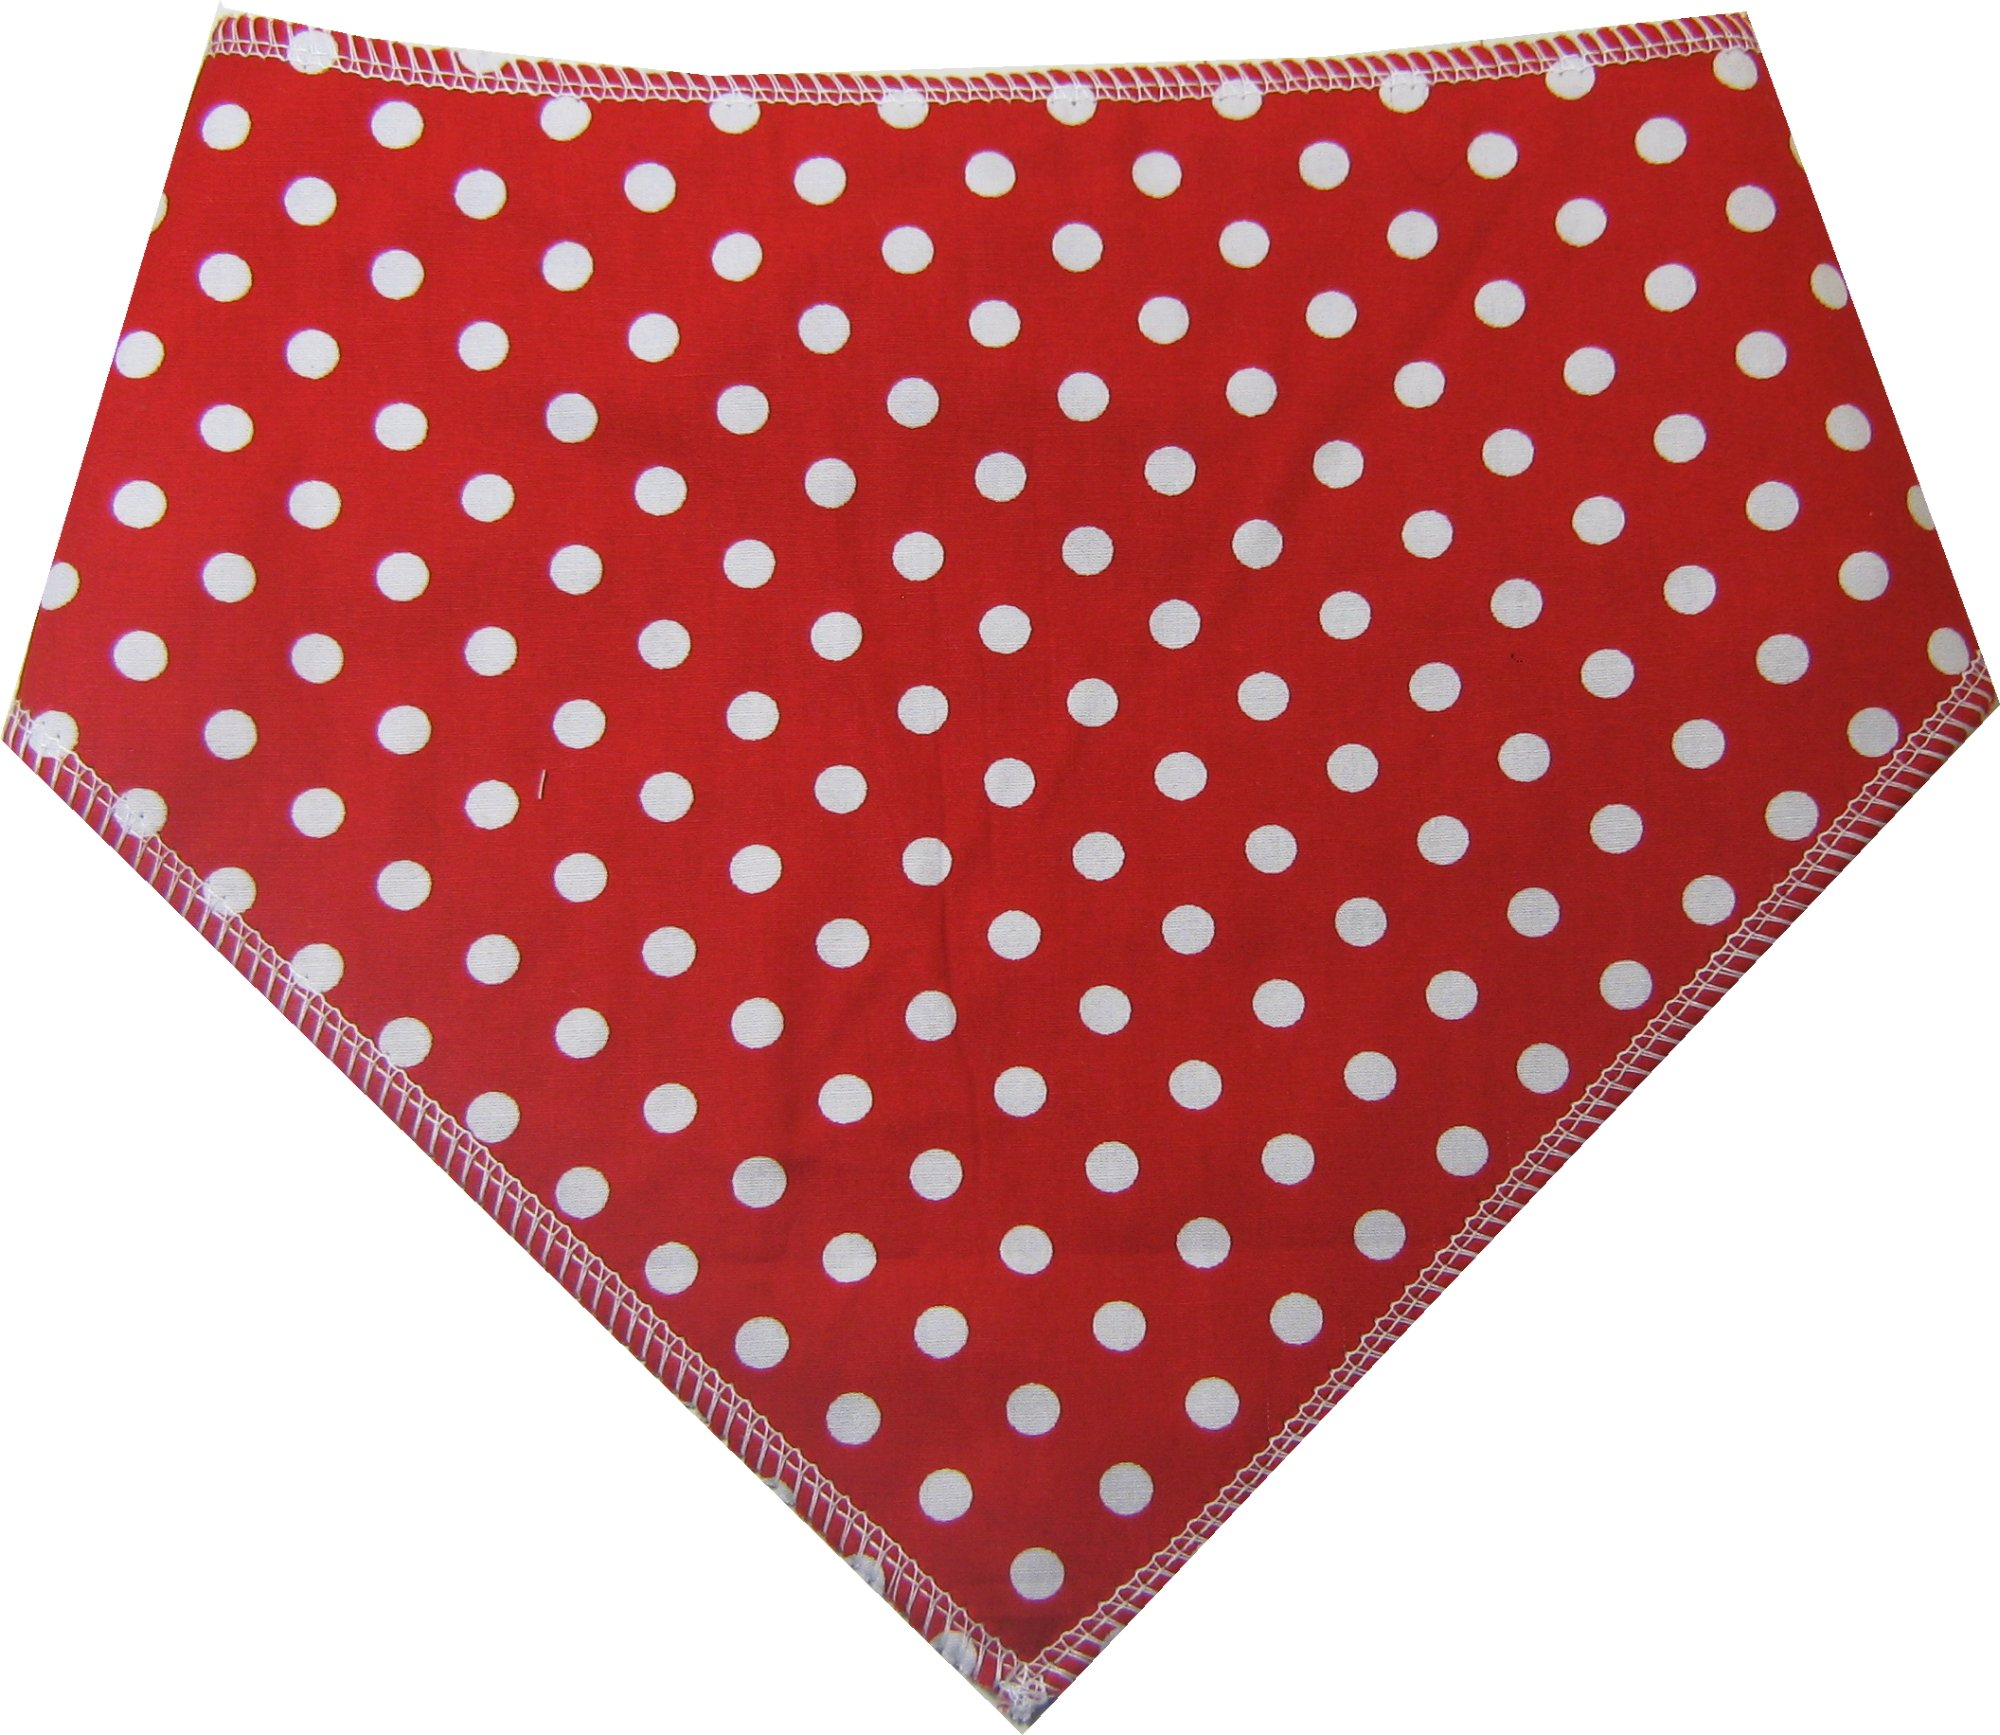 Spoilt Rotten Pets (S4 Vintage Style RED Polka Dot Dog Bandana. Large Size Generally Fits Rottweilers and St Bernard Sized Dogs. Neck Size 23″ to 28″ Gorgeous Range of Patterns & Colours.